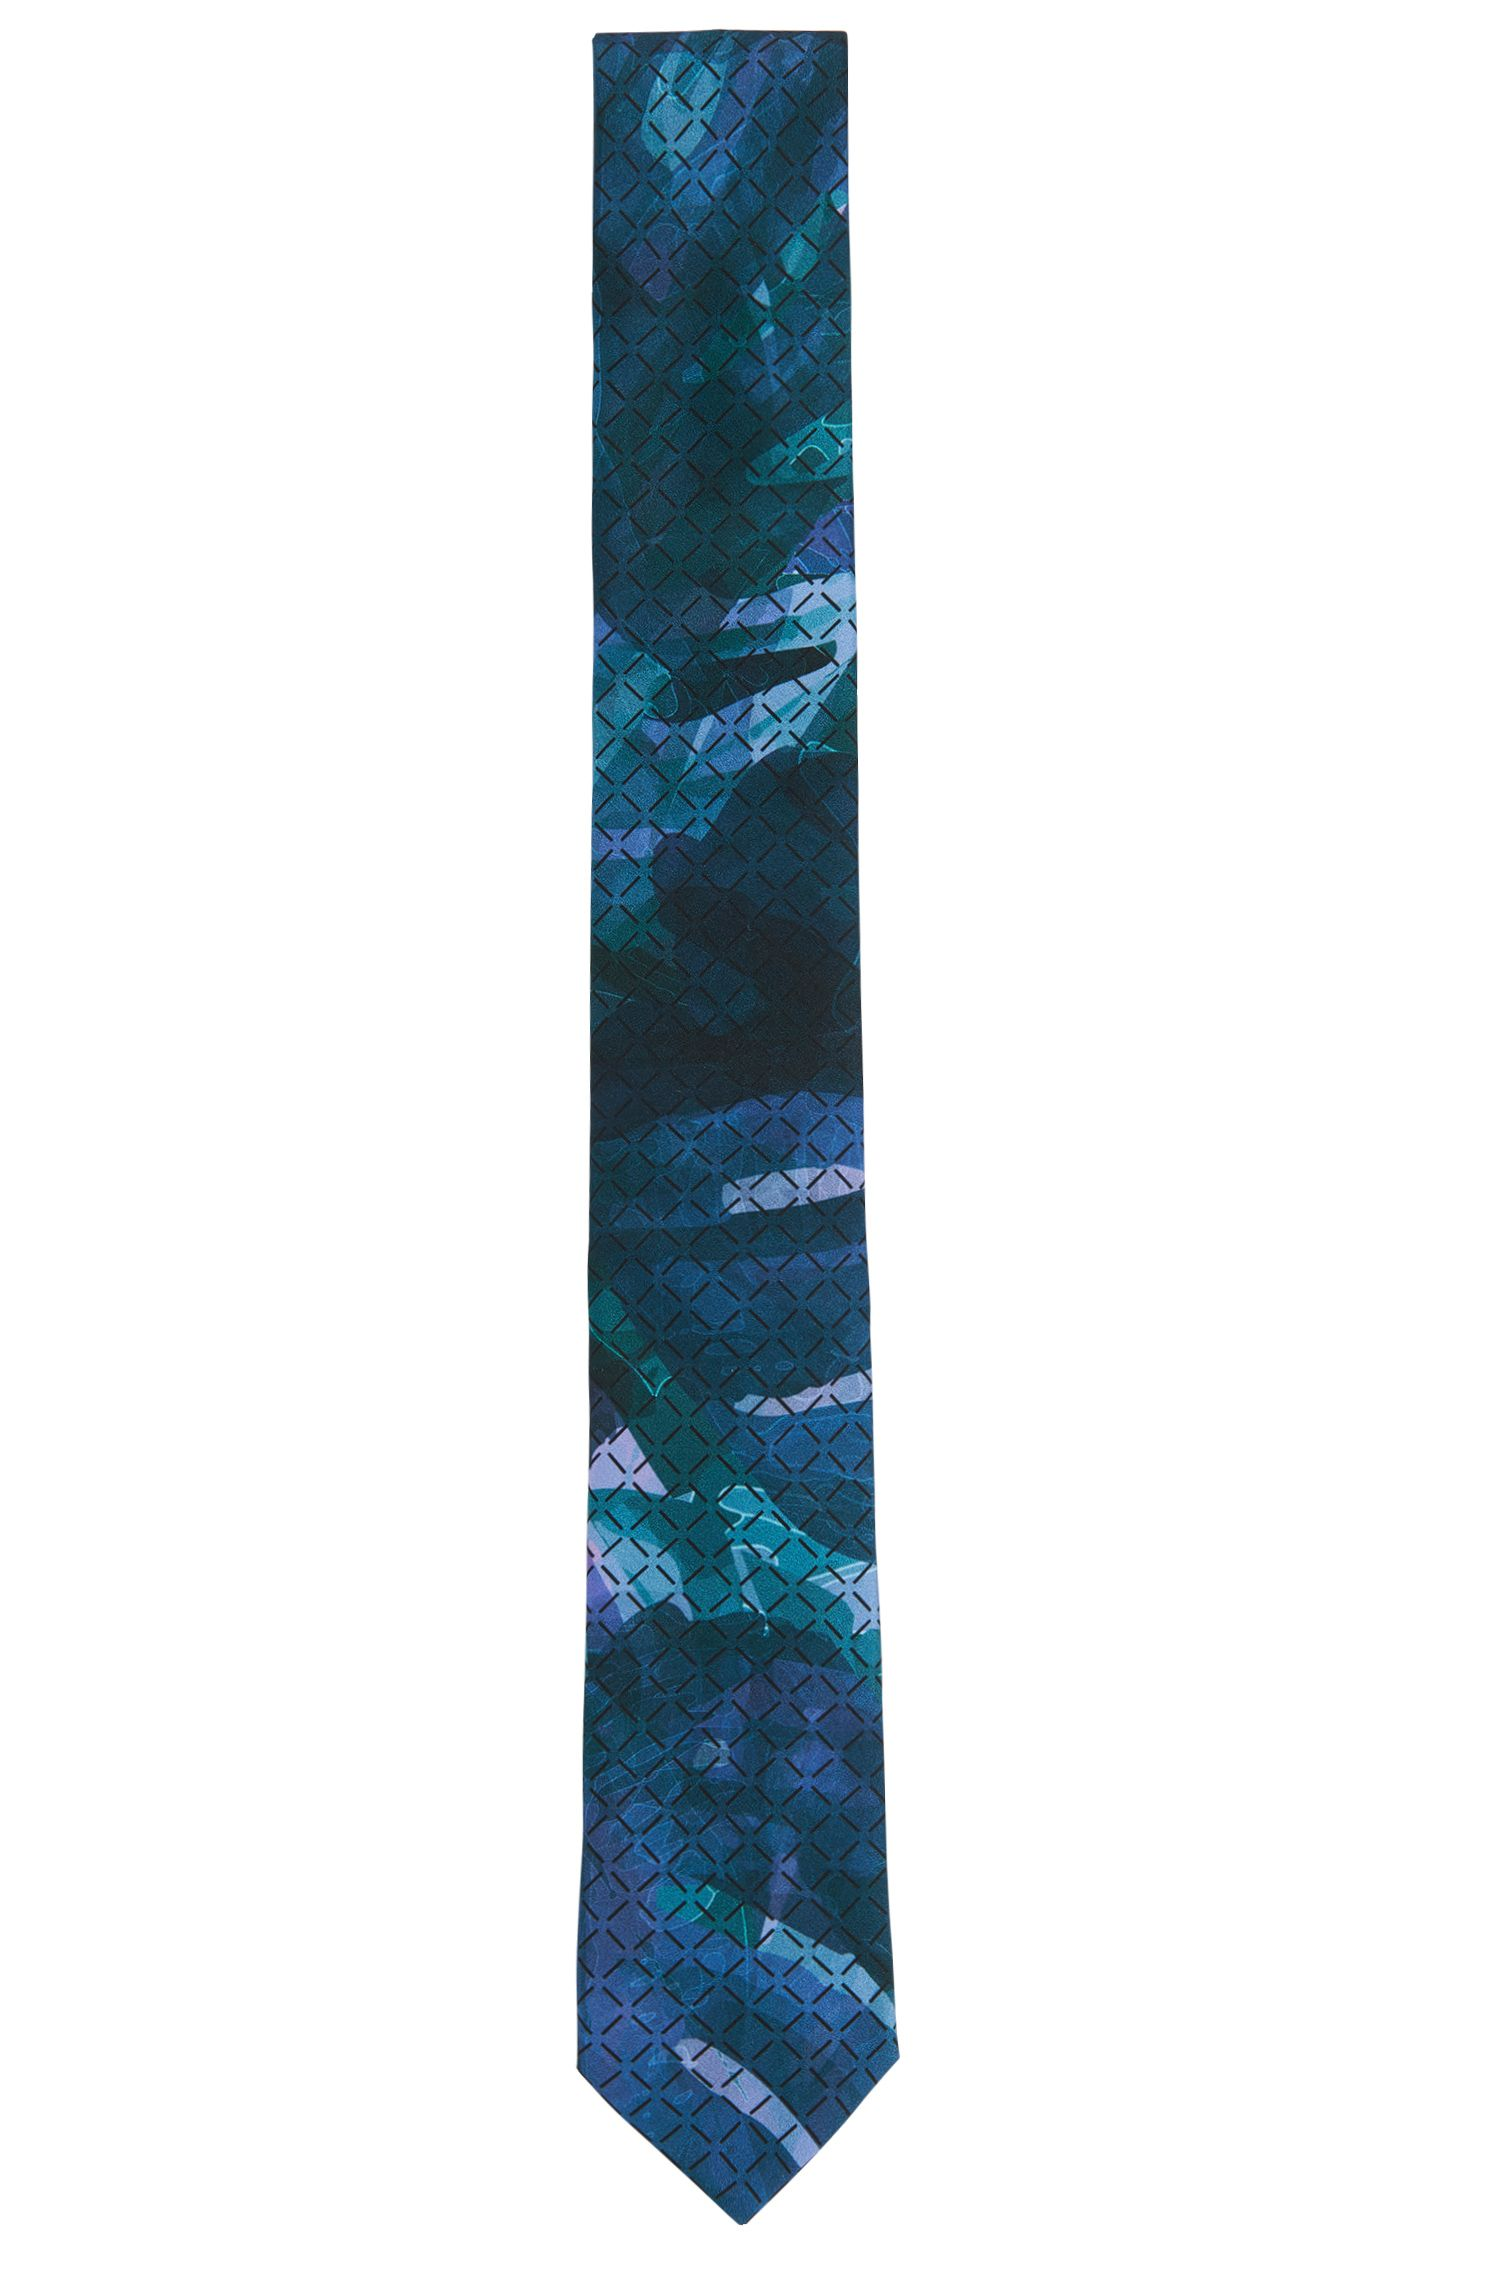 'Tie 6 cm' | Slim, Silk Embroidered Tie, Green